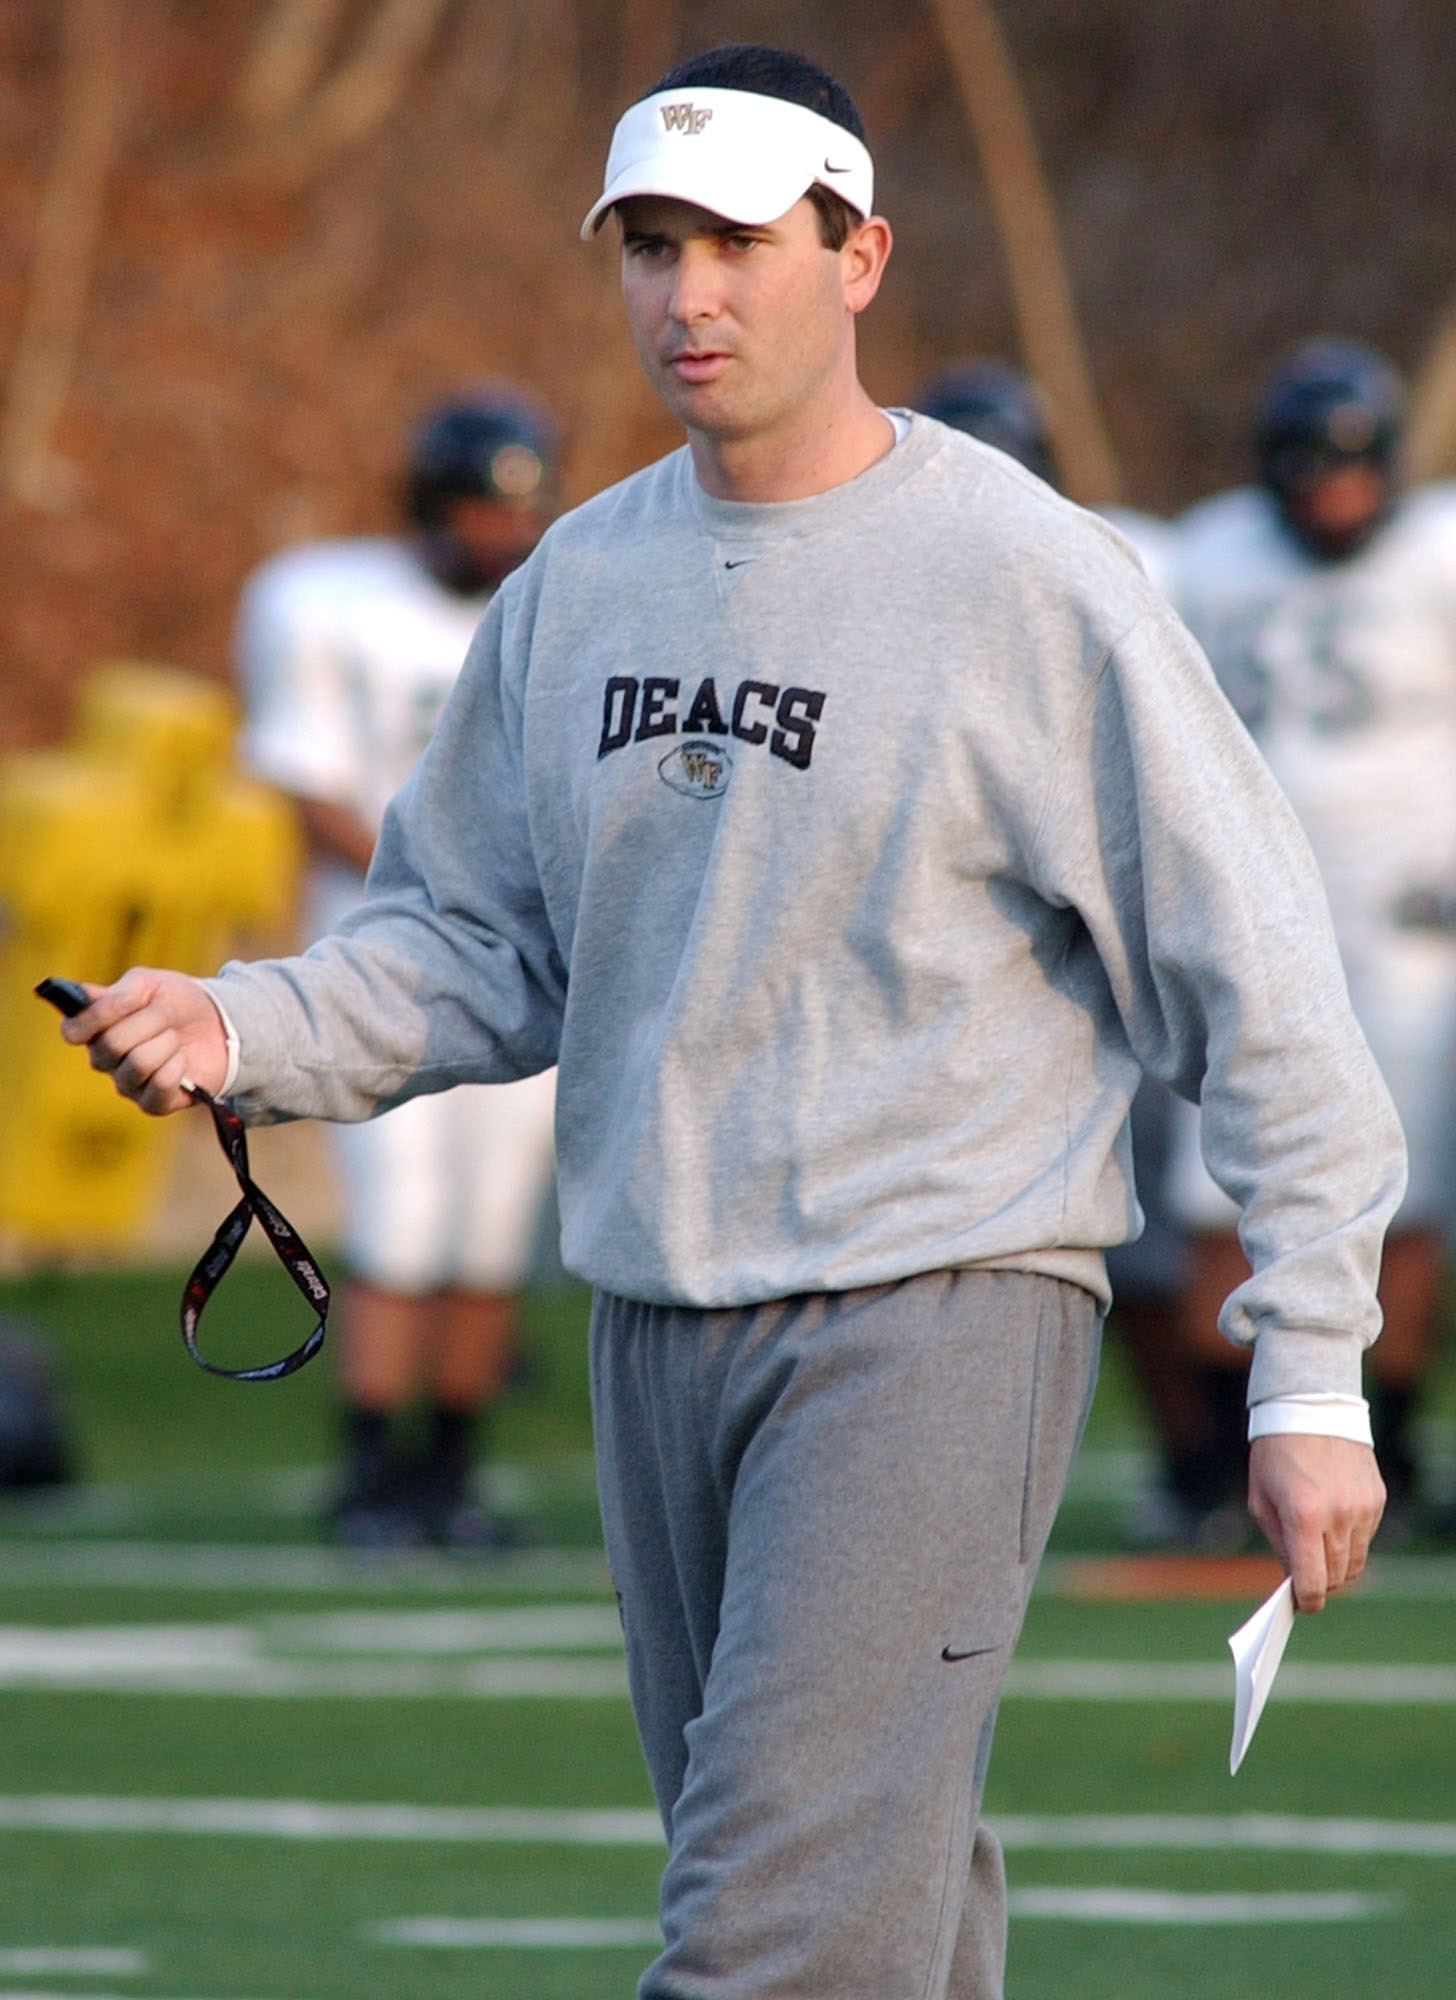 In this Dec. 9, 2006 file photo Tommy Elrod walks on the field while he was serving as assistant coach at Wake Forest University. Elrod, who has served as a radio announcer for the Deacons football games since 2014, has been identified by Wake Forest as t